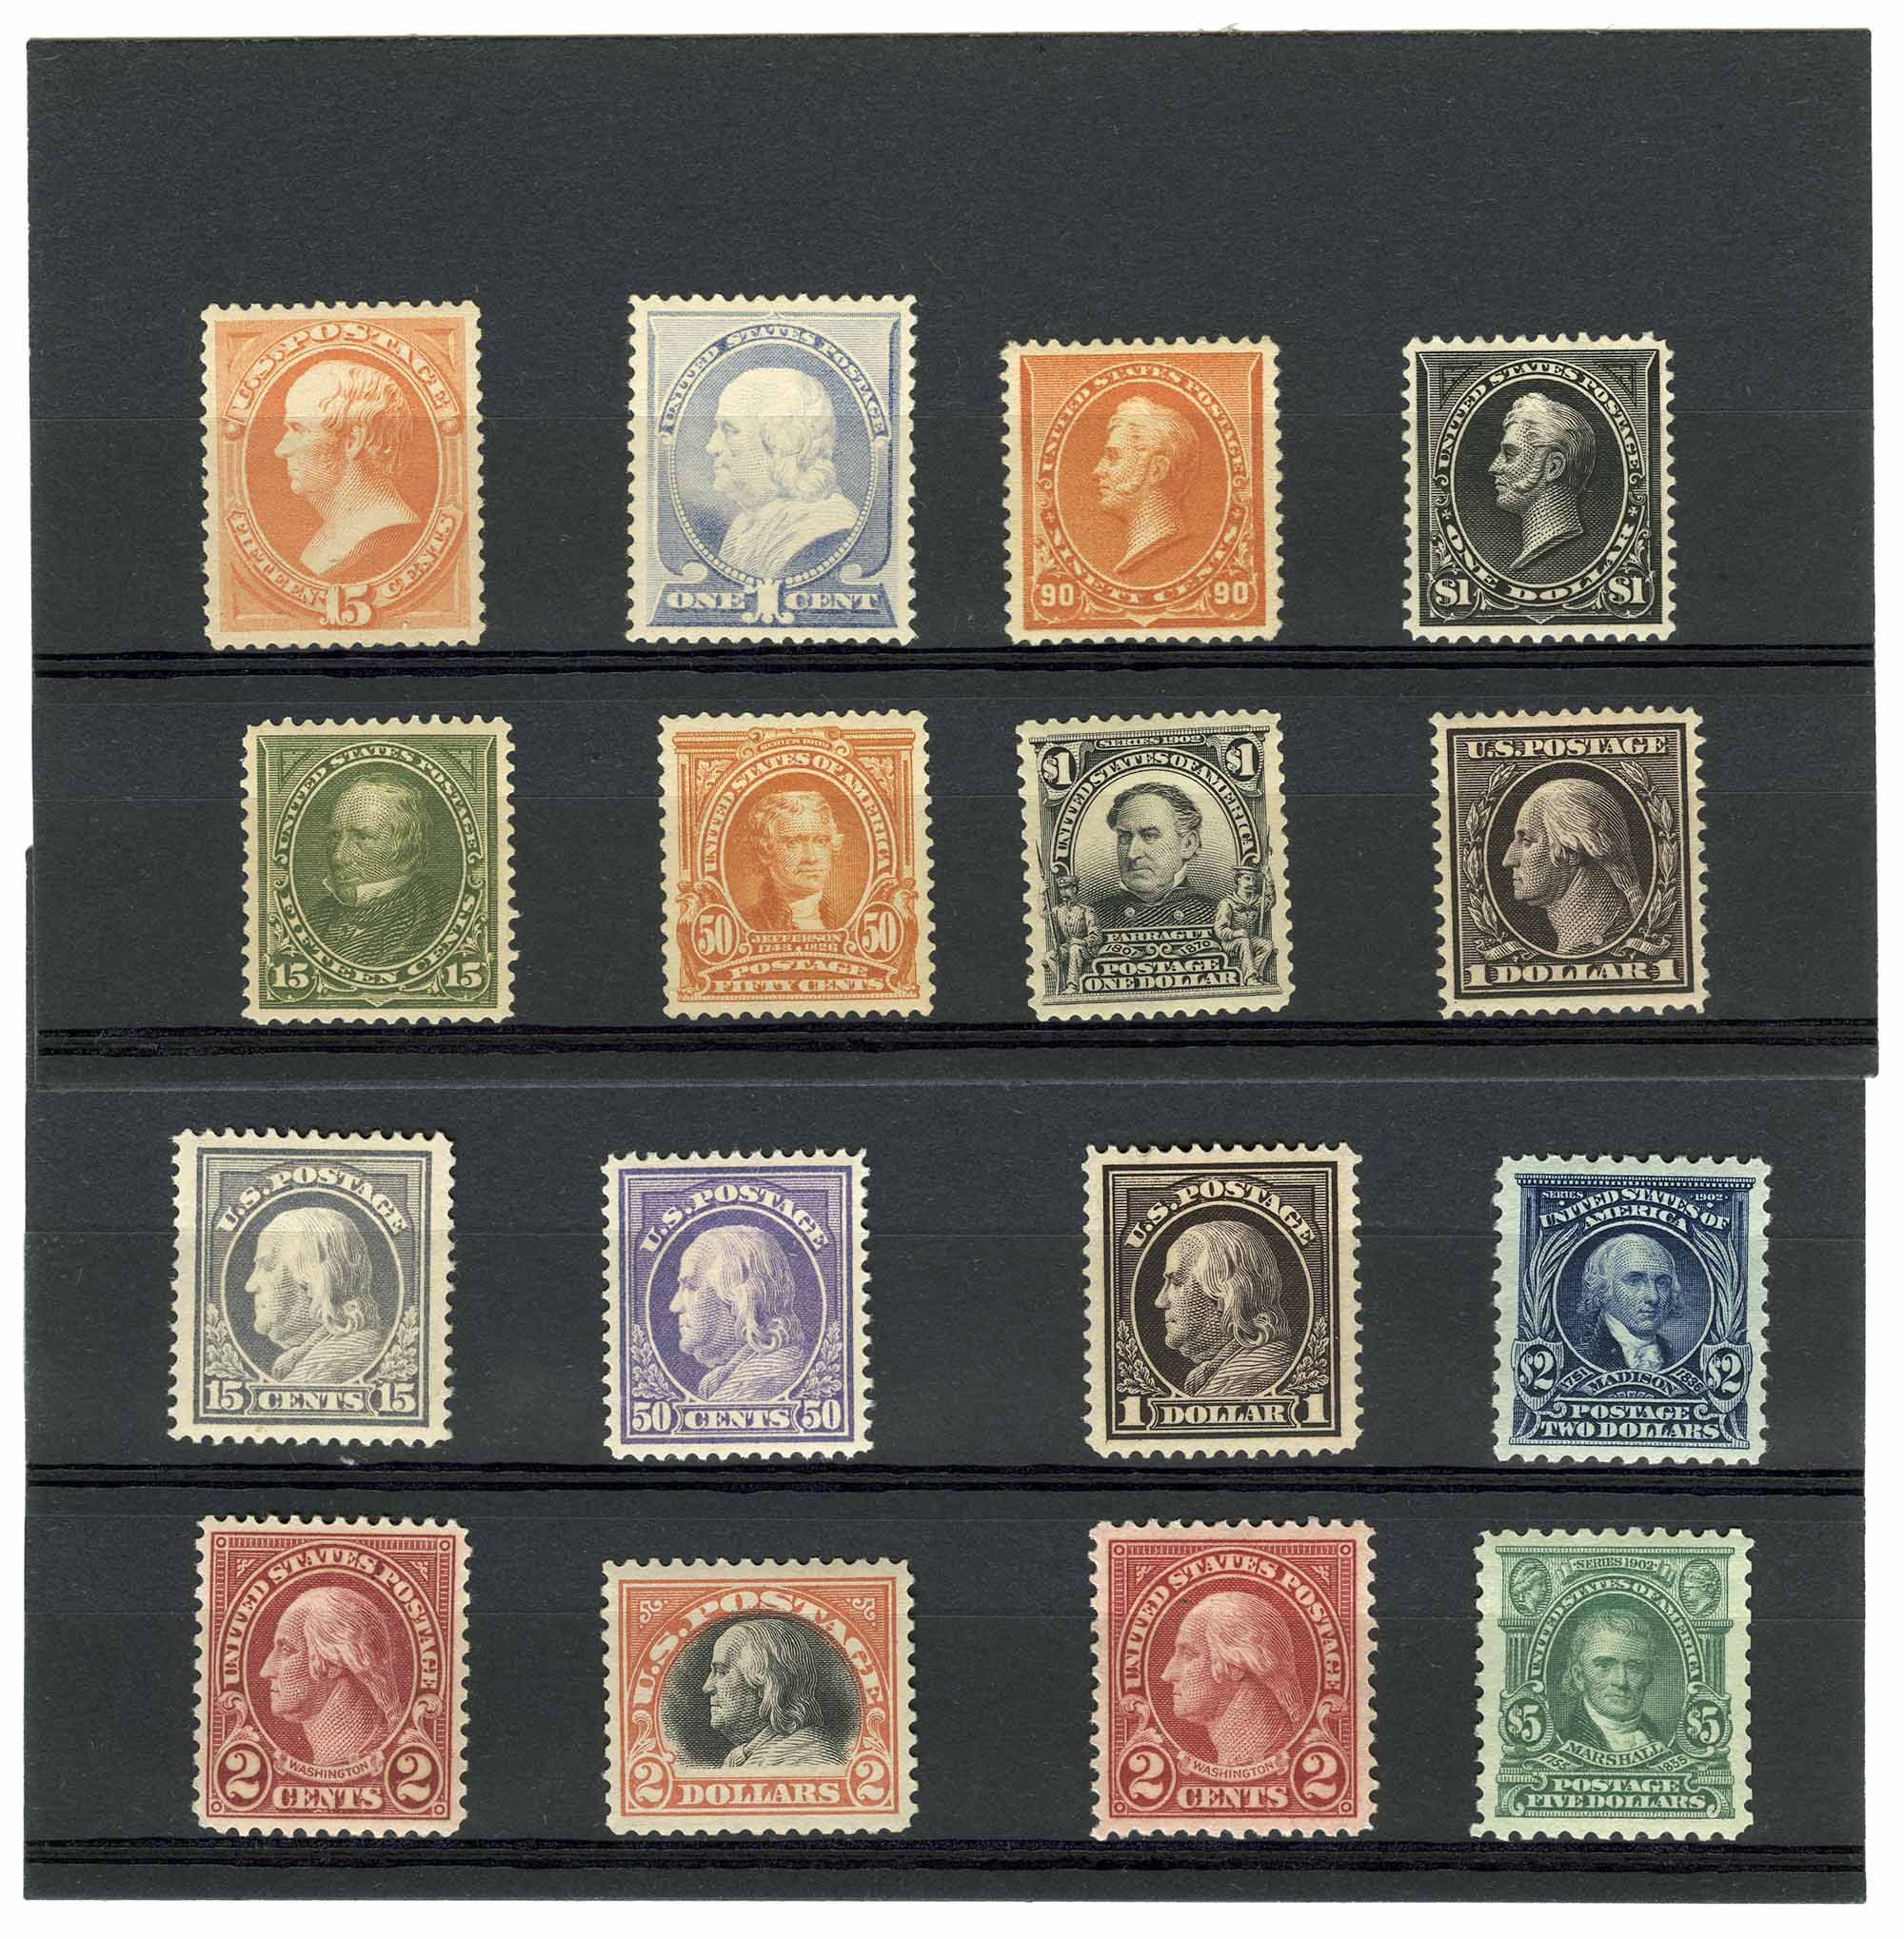 Lot image - United States Regular Issue Postage Stamps